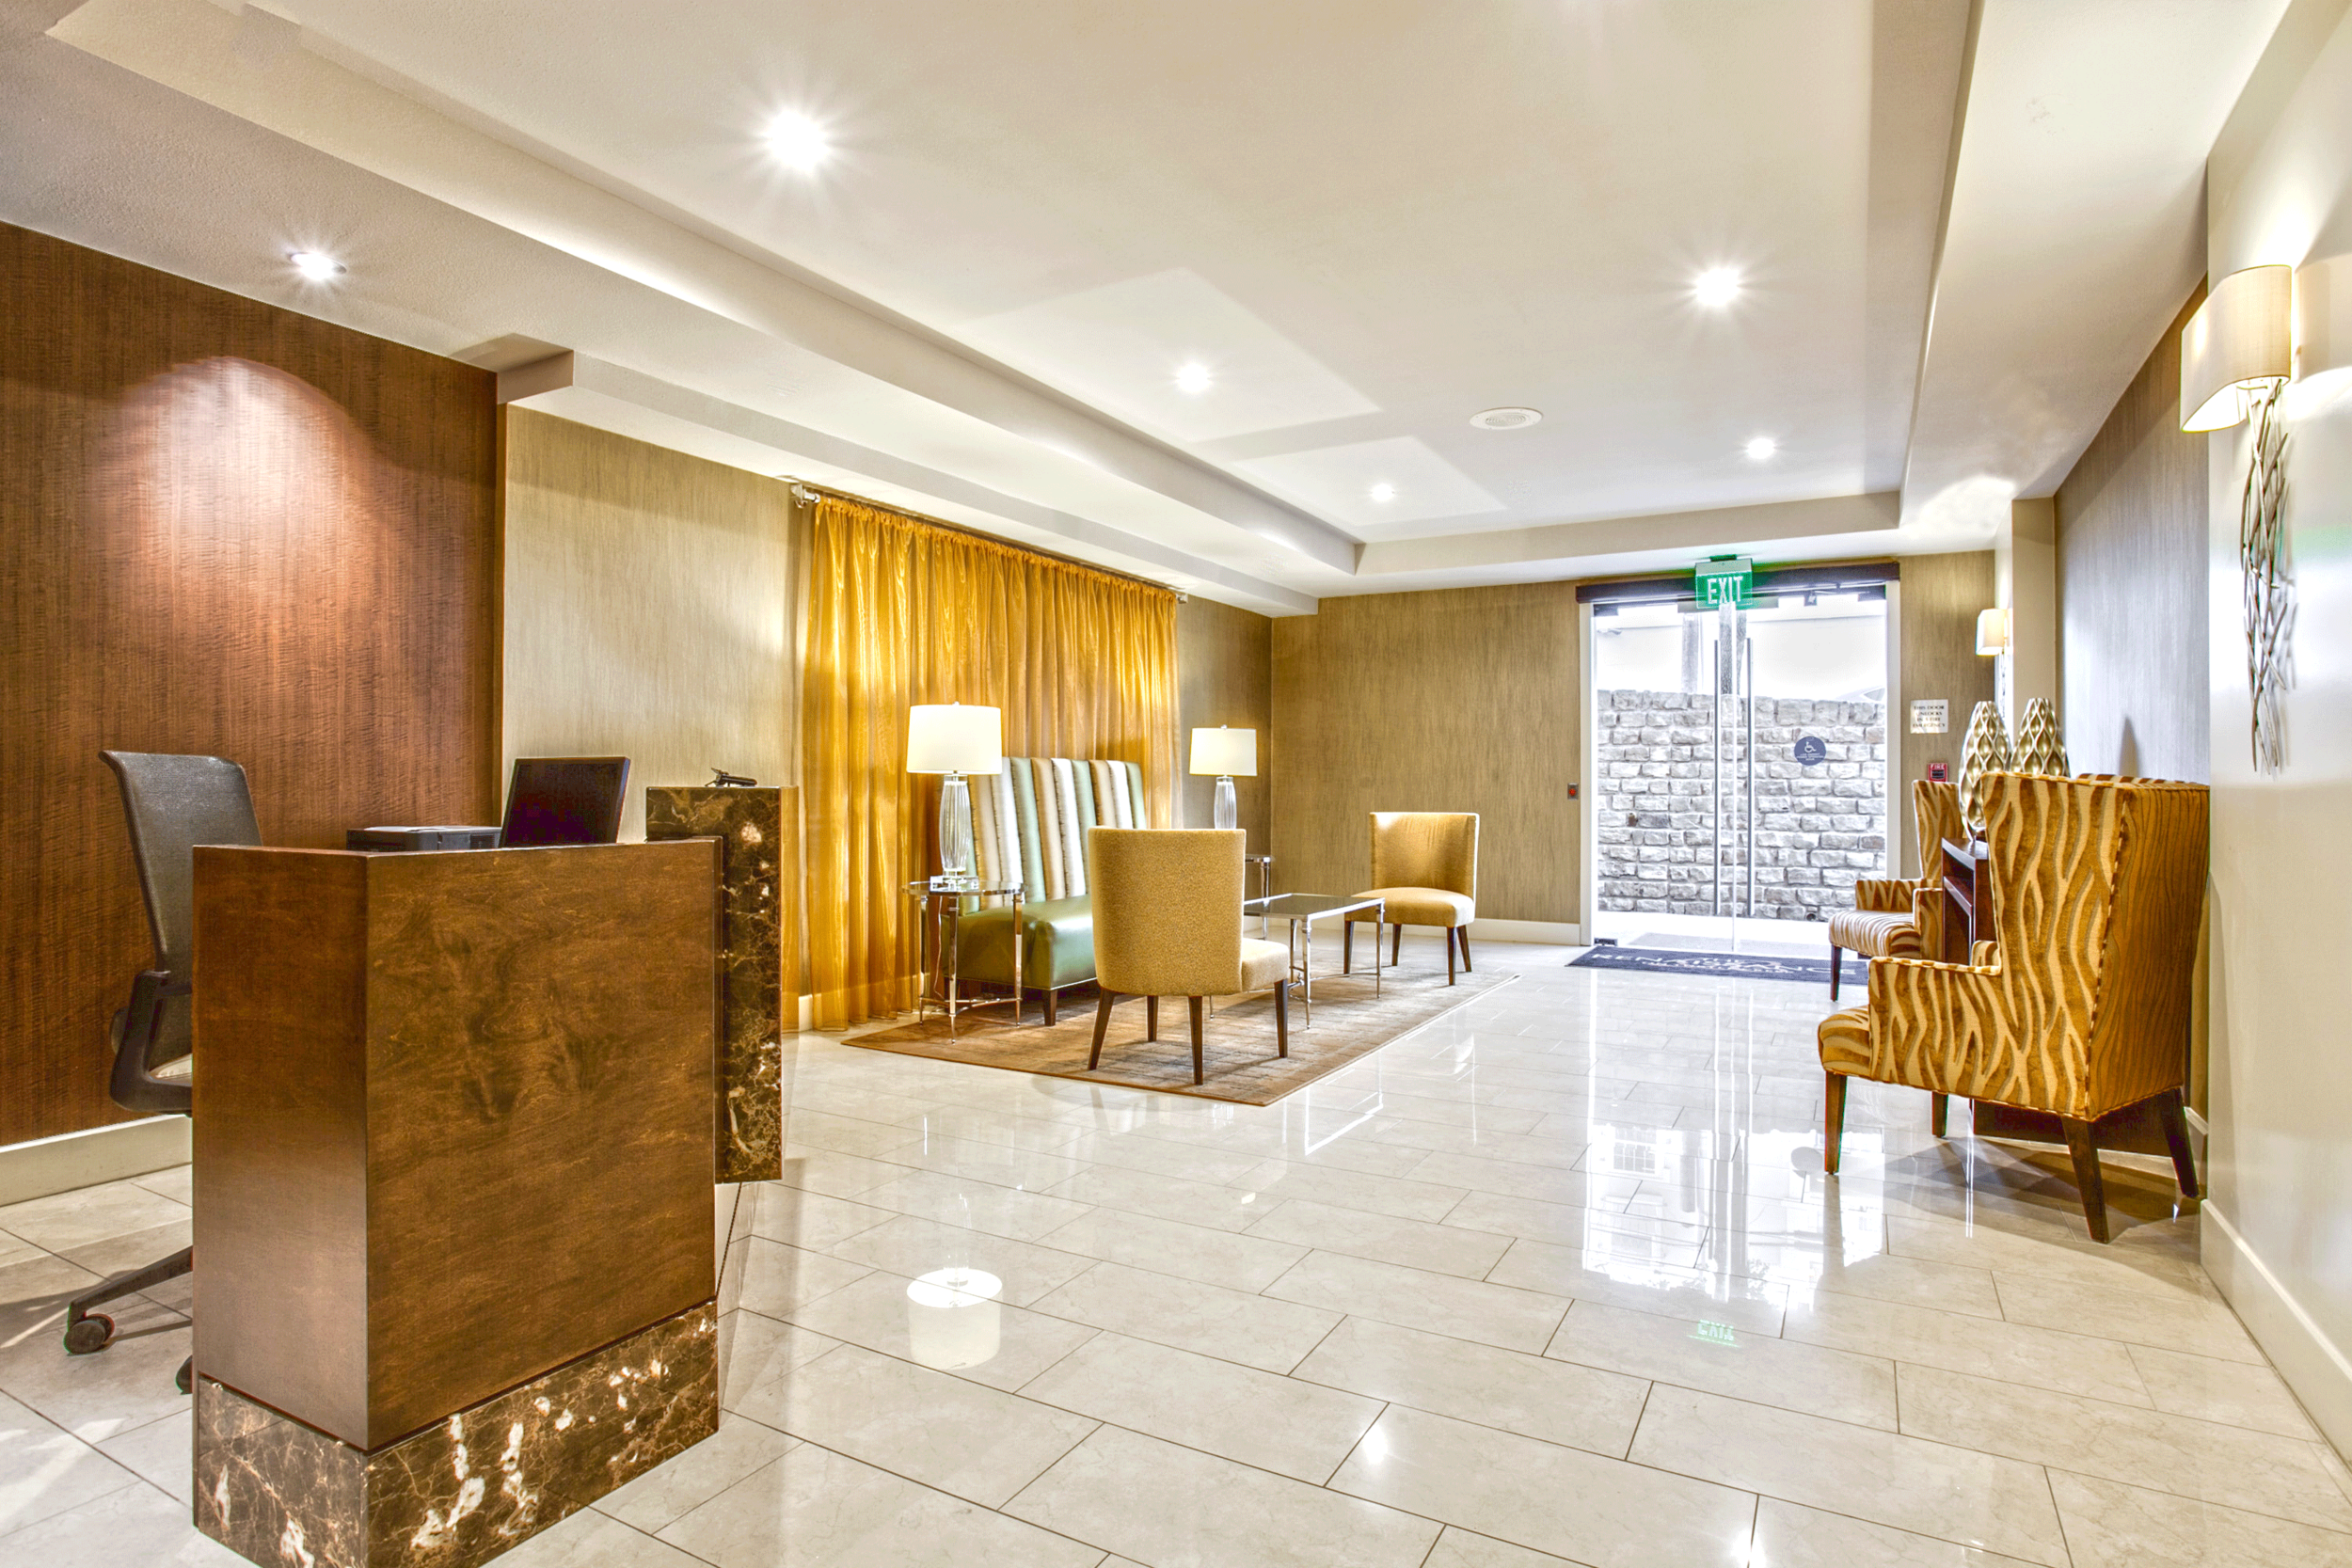 WEST LOBBY - An intimate space, with less of the